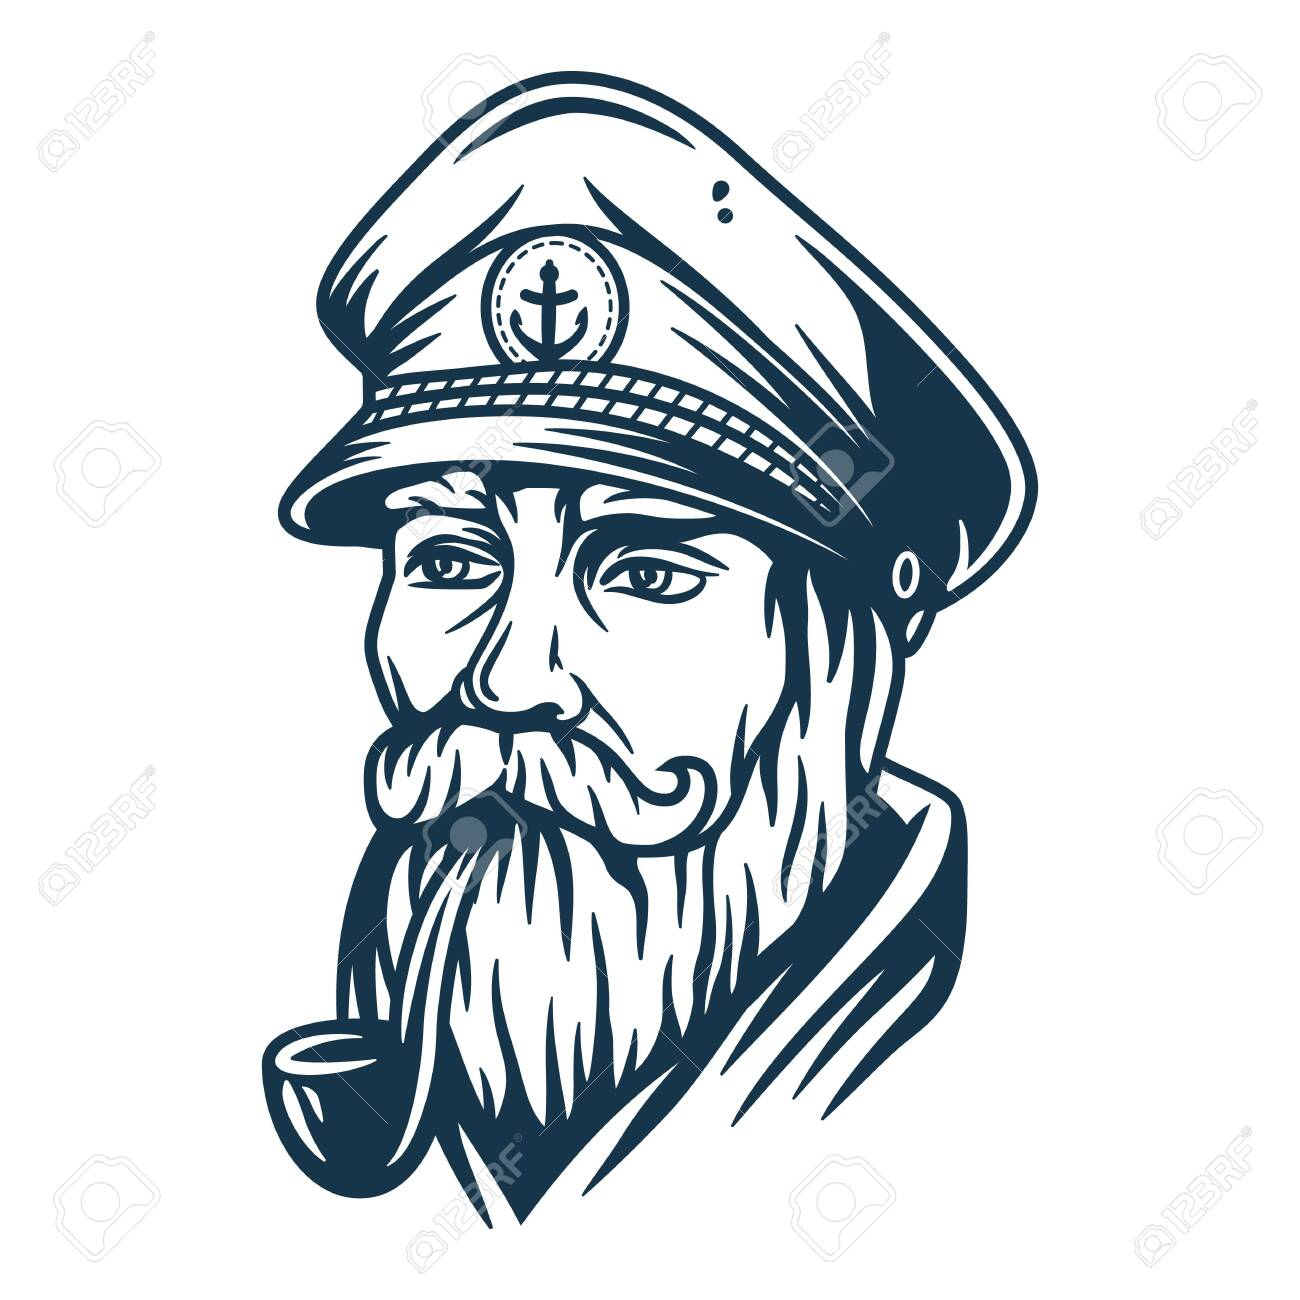 Bearded ship sailor with captain cap and a pipe - 151906100